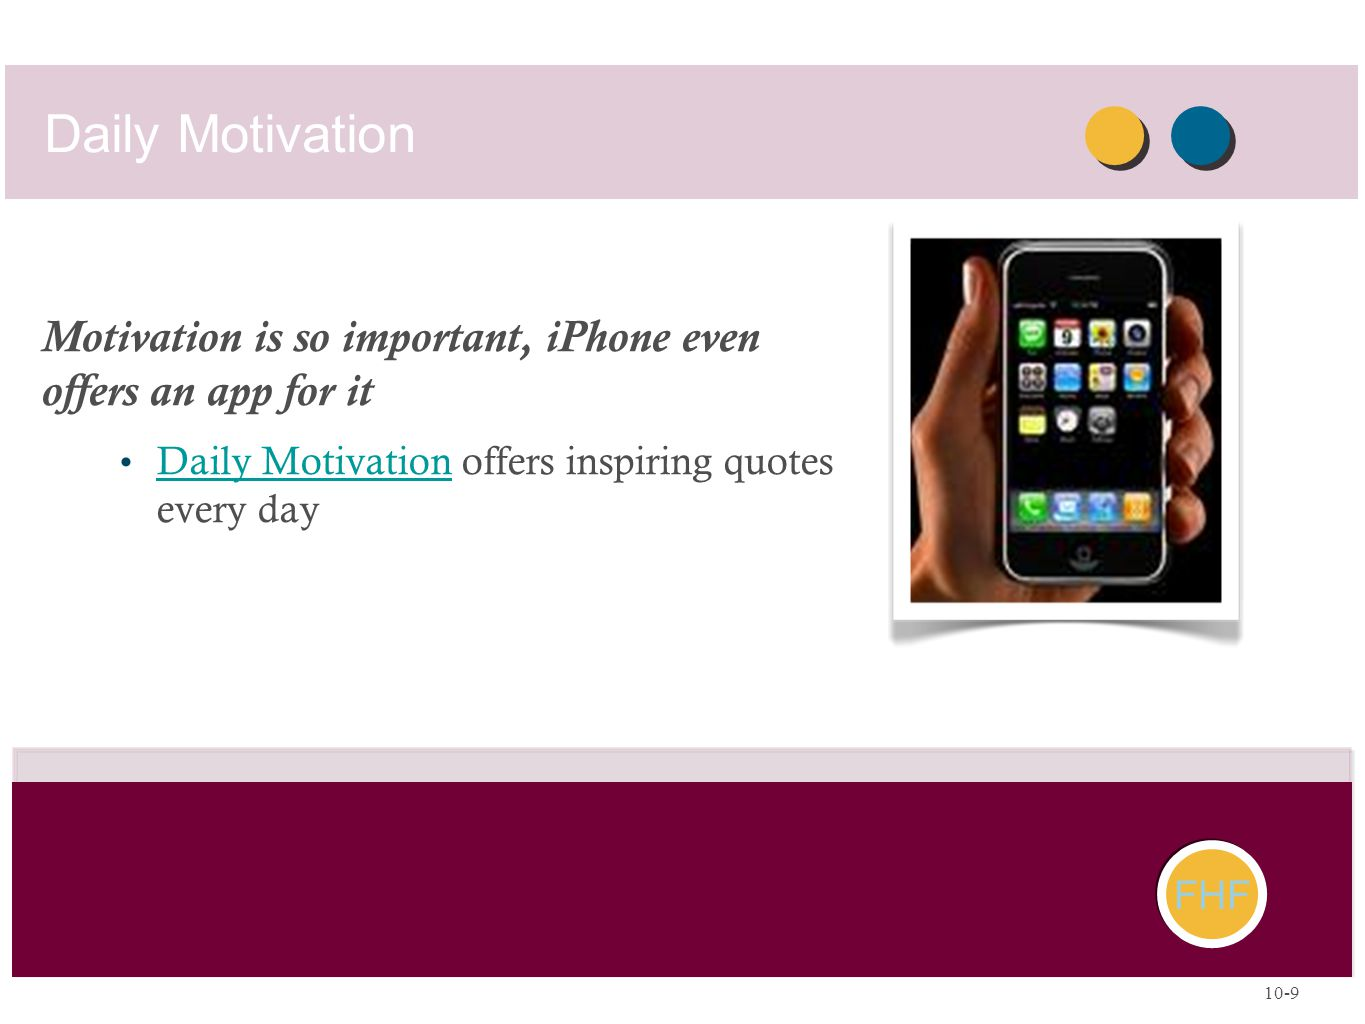 Daily Motivation FHF Motivation is so important, iPhone even offers an app for it Daily Motivation offers inspiring quotes every day Daily Motivation